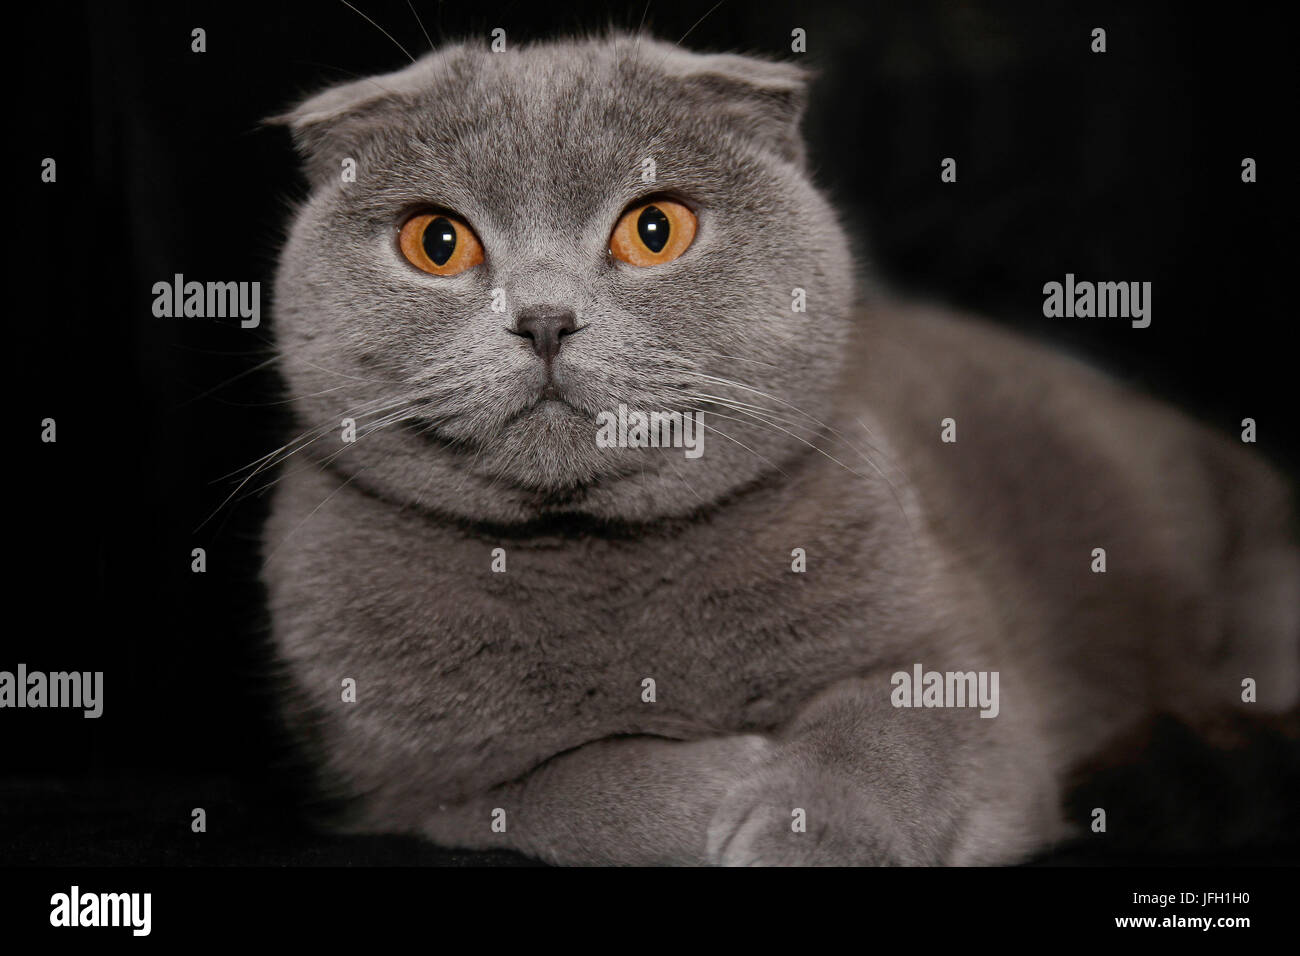 british shorthair, floppy ears, young animal - Stock Image